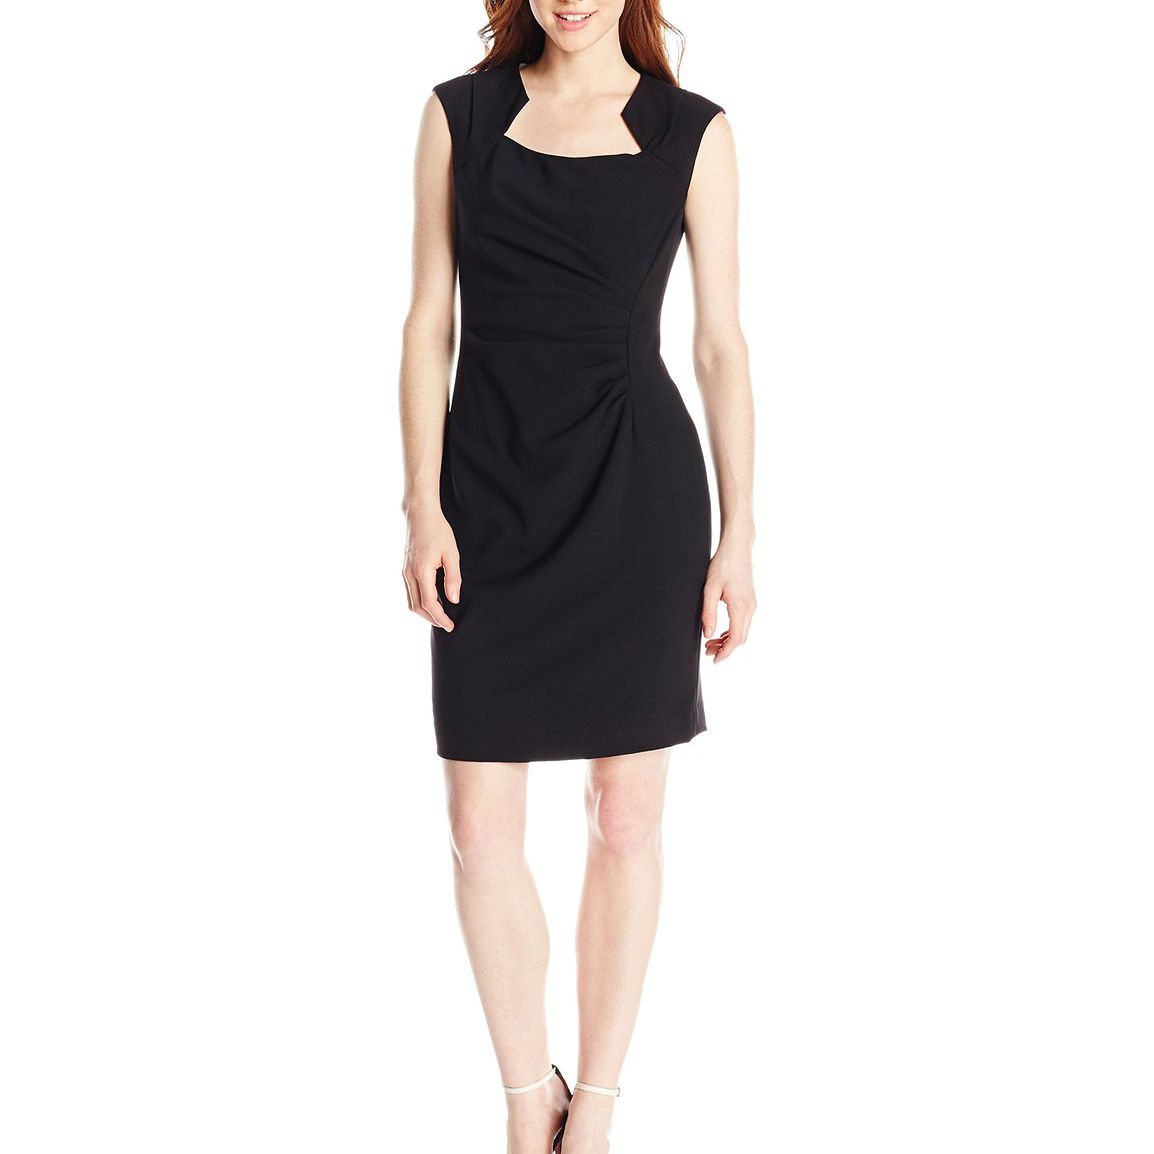 d62b5ffb Calvin Klein Women's Petite Cap-Sleeve Sheath Dress